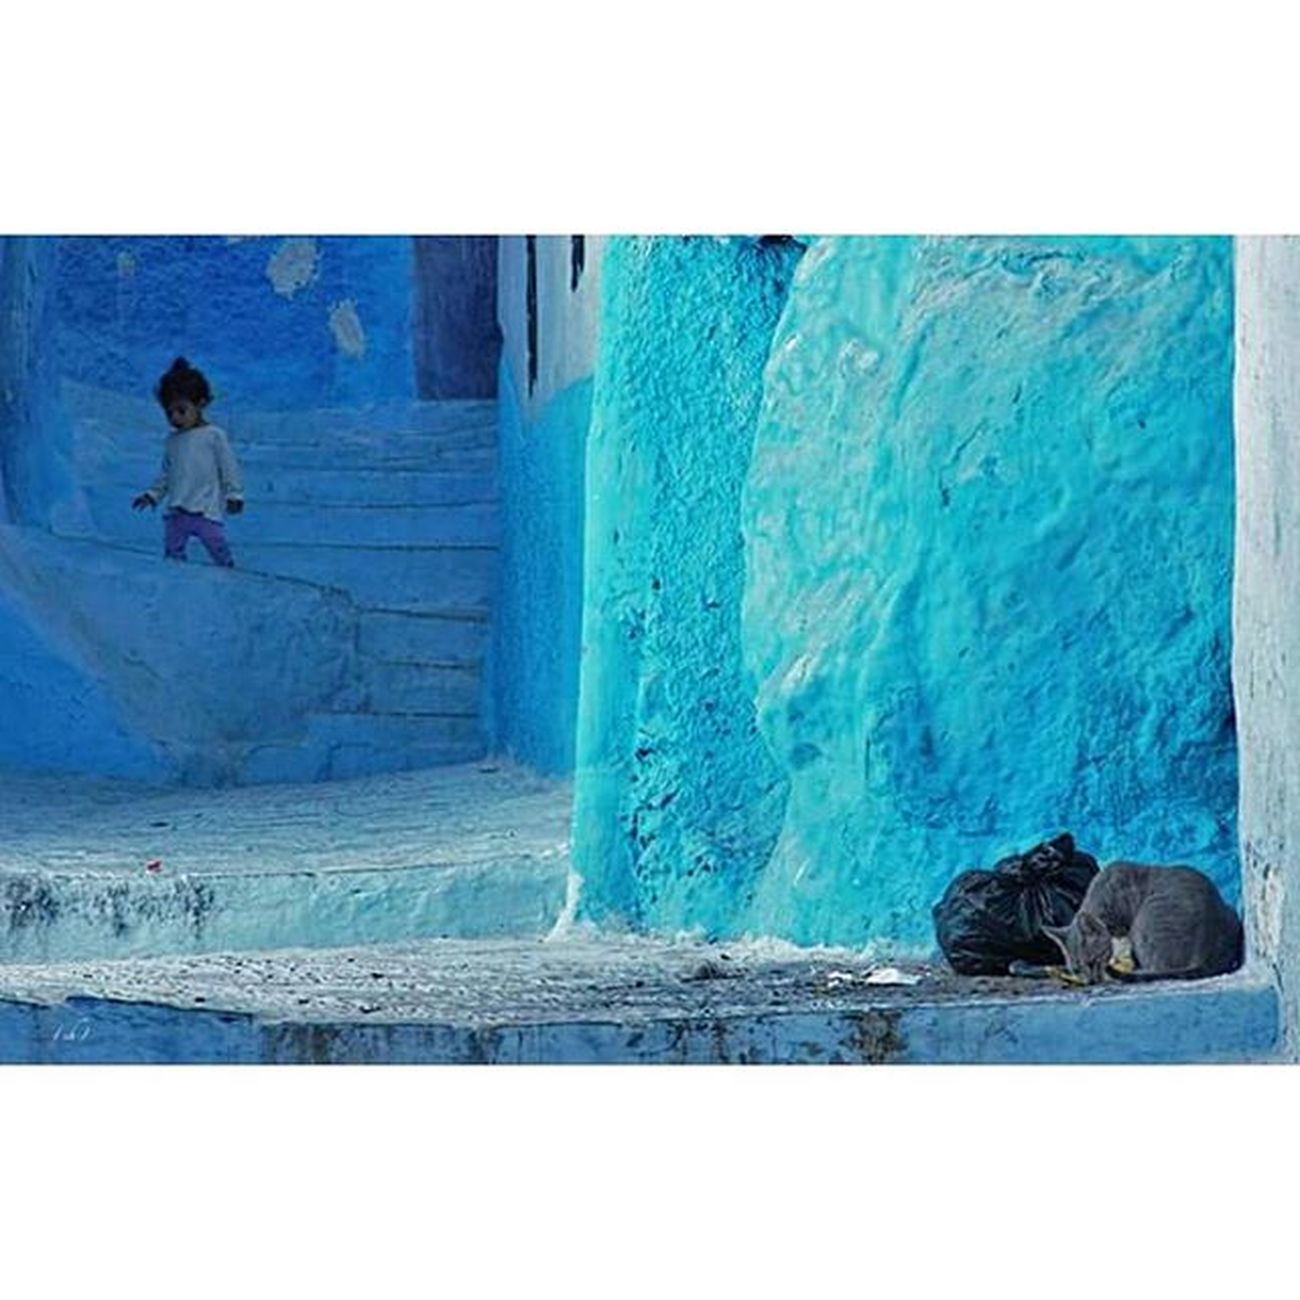 Pausekidcat Pause Kidcat Kid Cat Enfant Chat Child Chefchaouen Street Rue City Architecture Blue Bluecity Villebleue Maroc Morocco Travel Trip Roadtrip Voyage